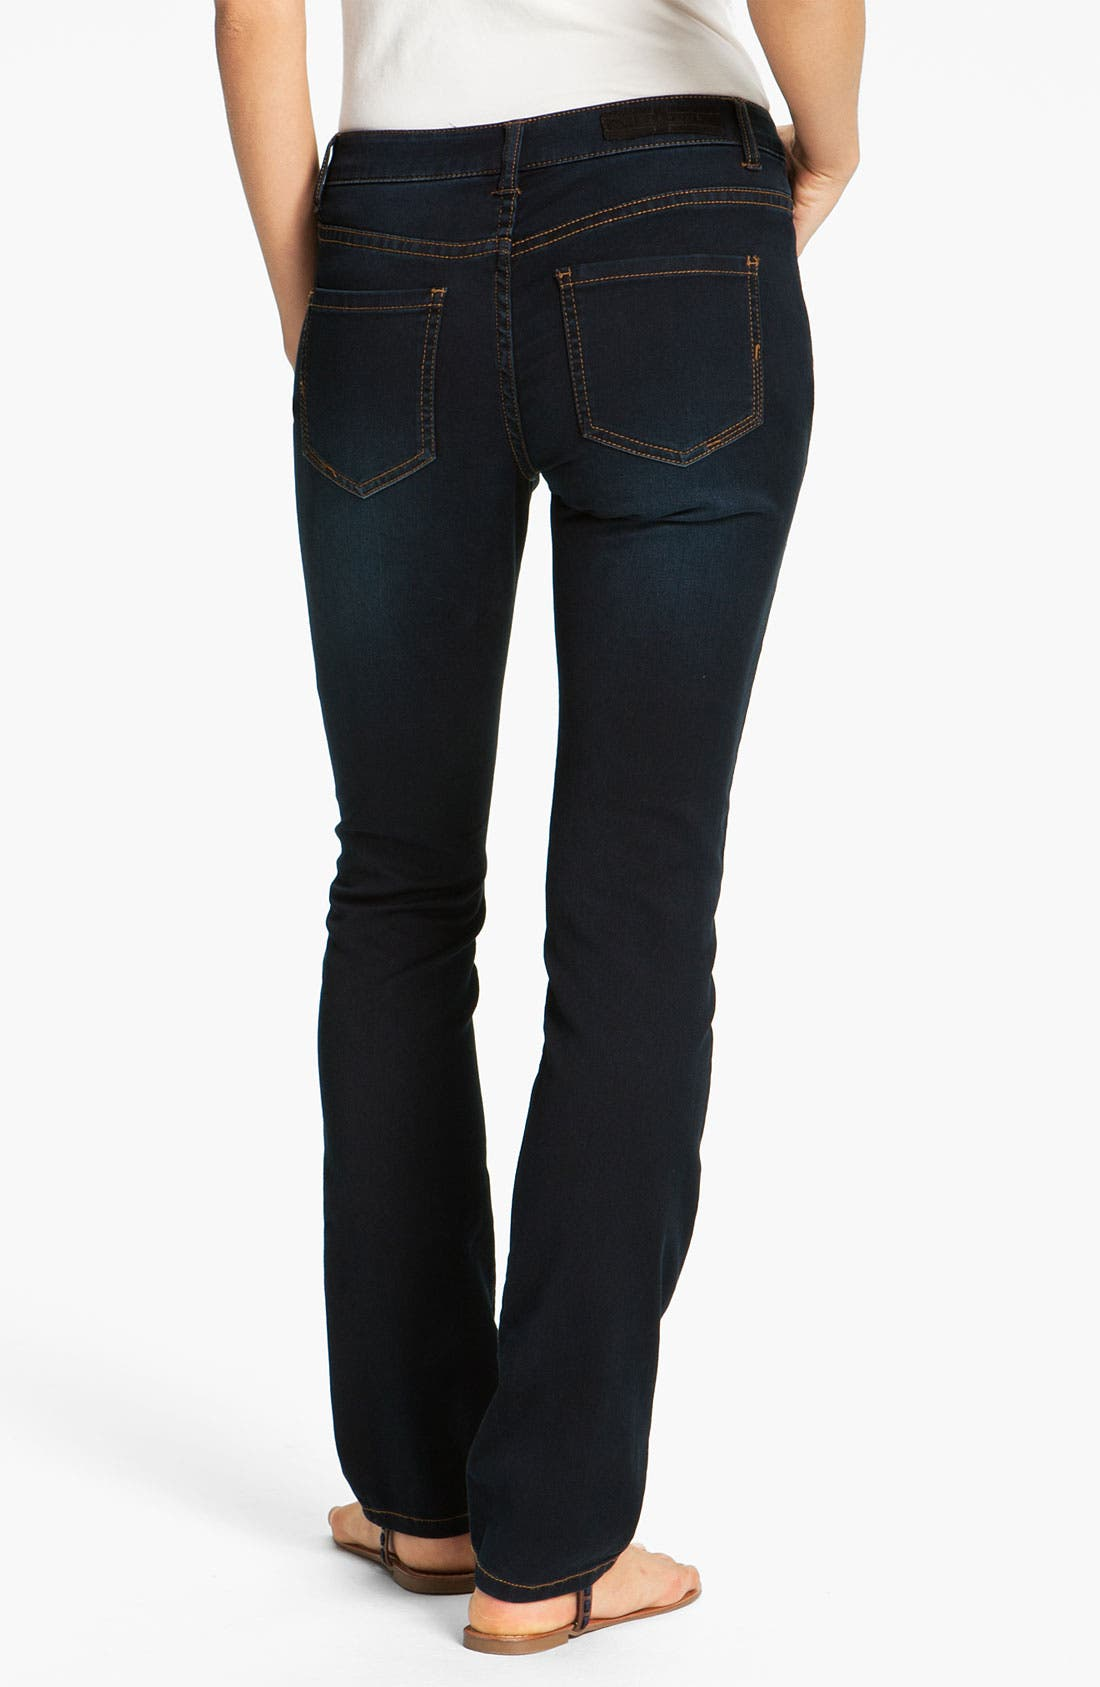 Alternate Image 1 Selected - Liverpool Jeans Company 'Sadie' Straight Leg Supersoft Stretch Jeans (Petite) (Online Only)